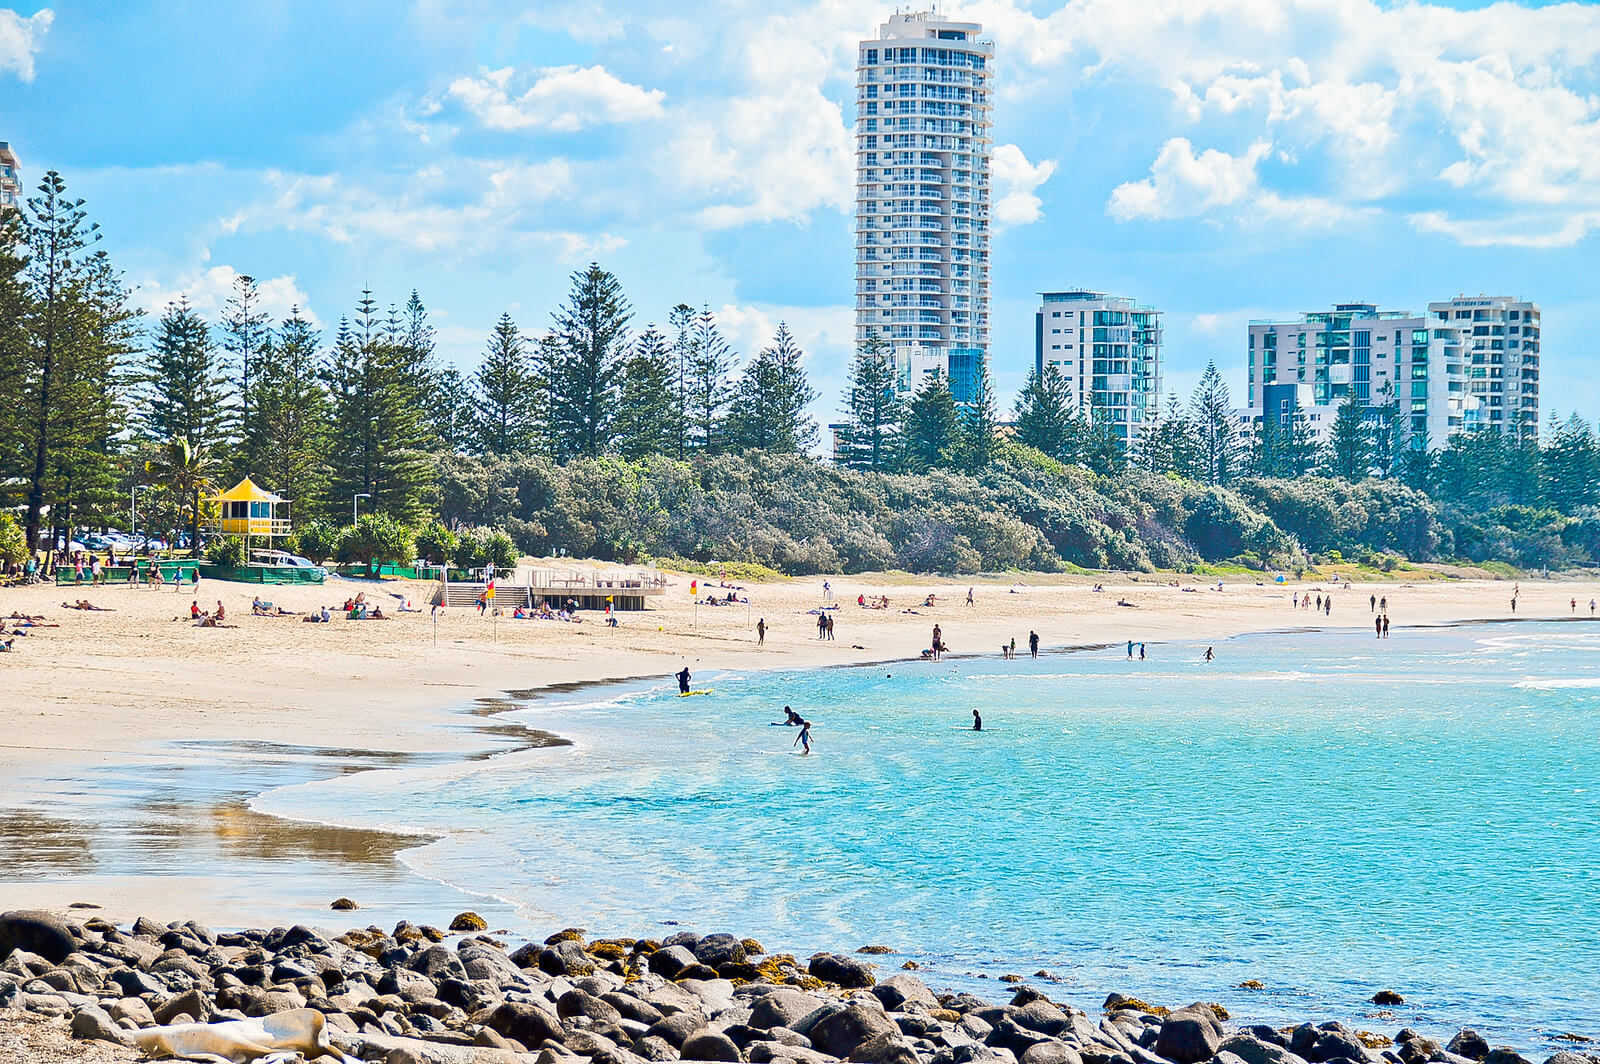 gold coast - Burleigh Heads Beach